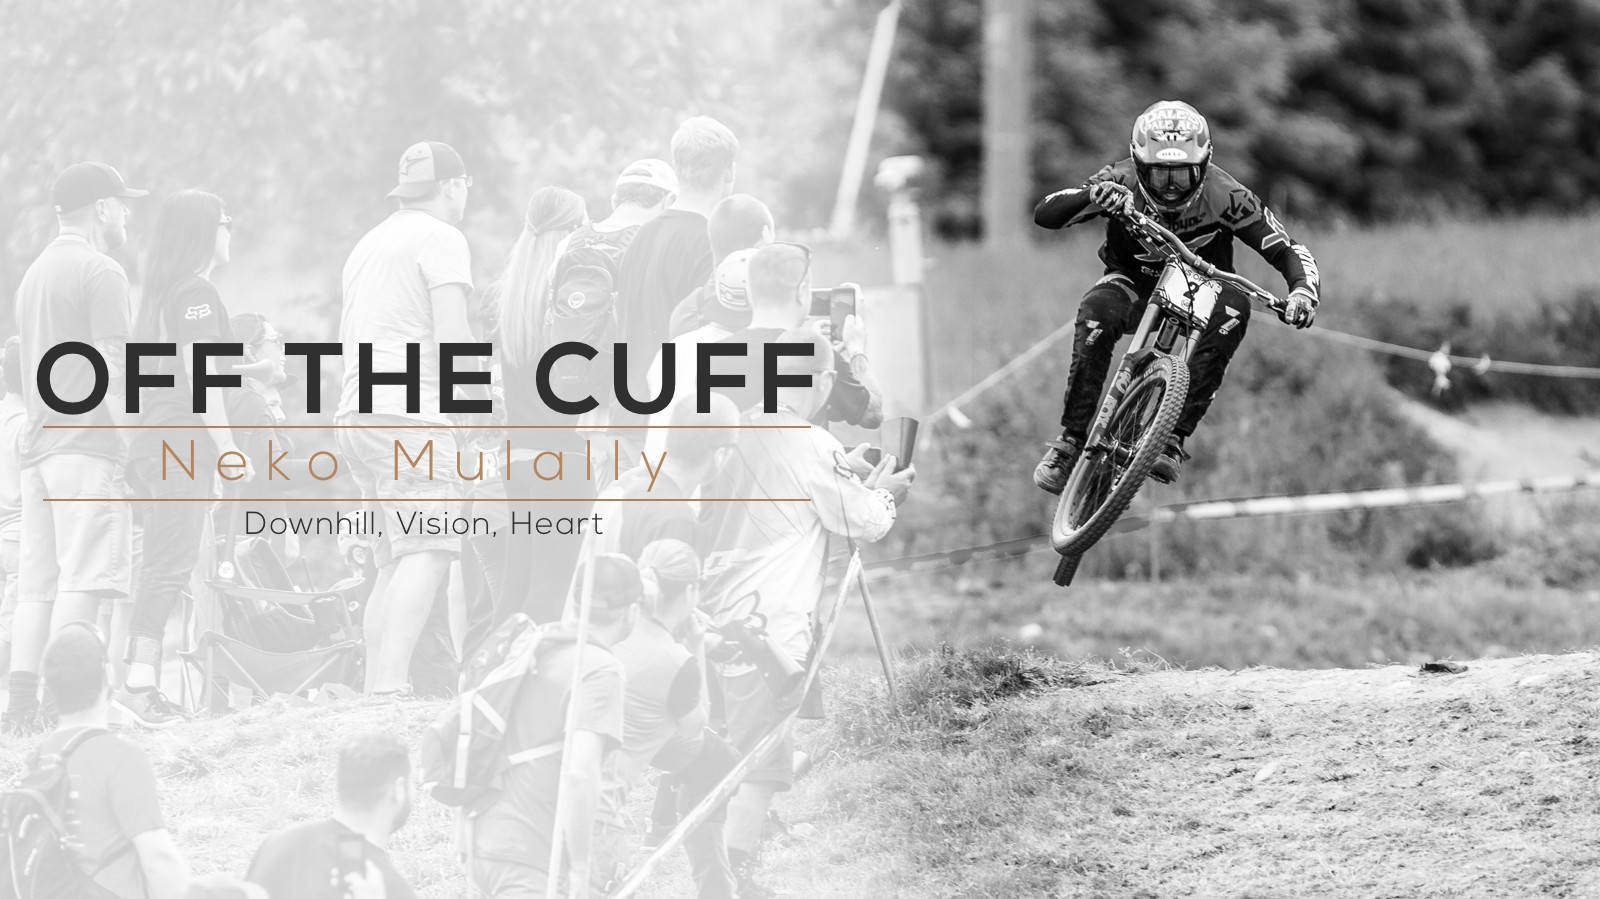 Off the Cuff - Neko Mulally